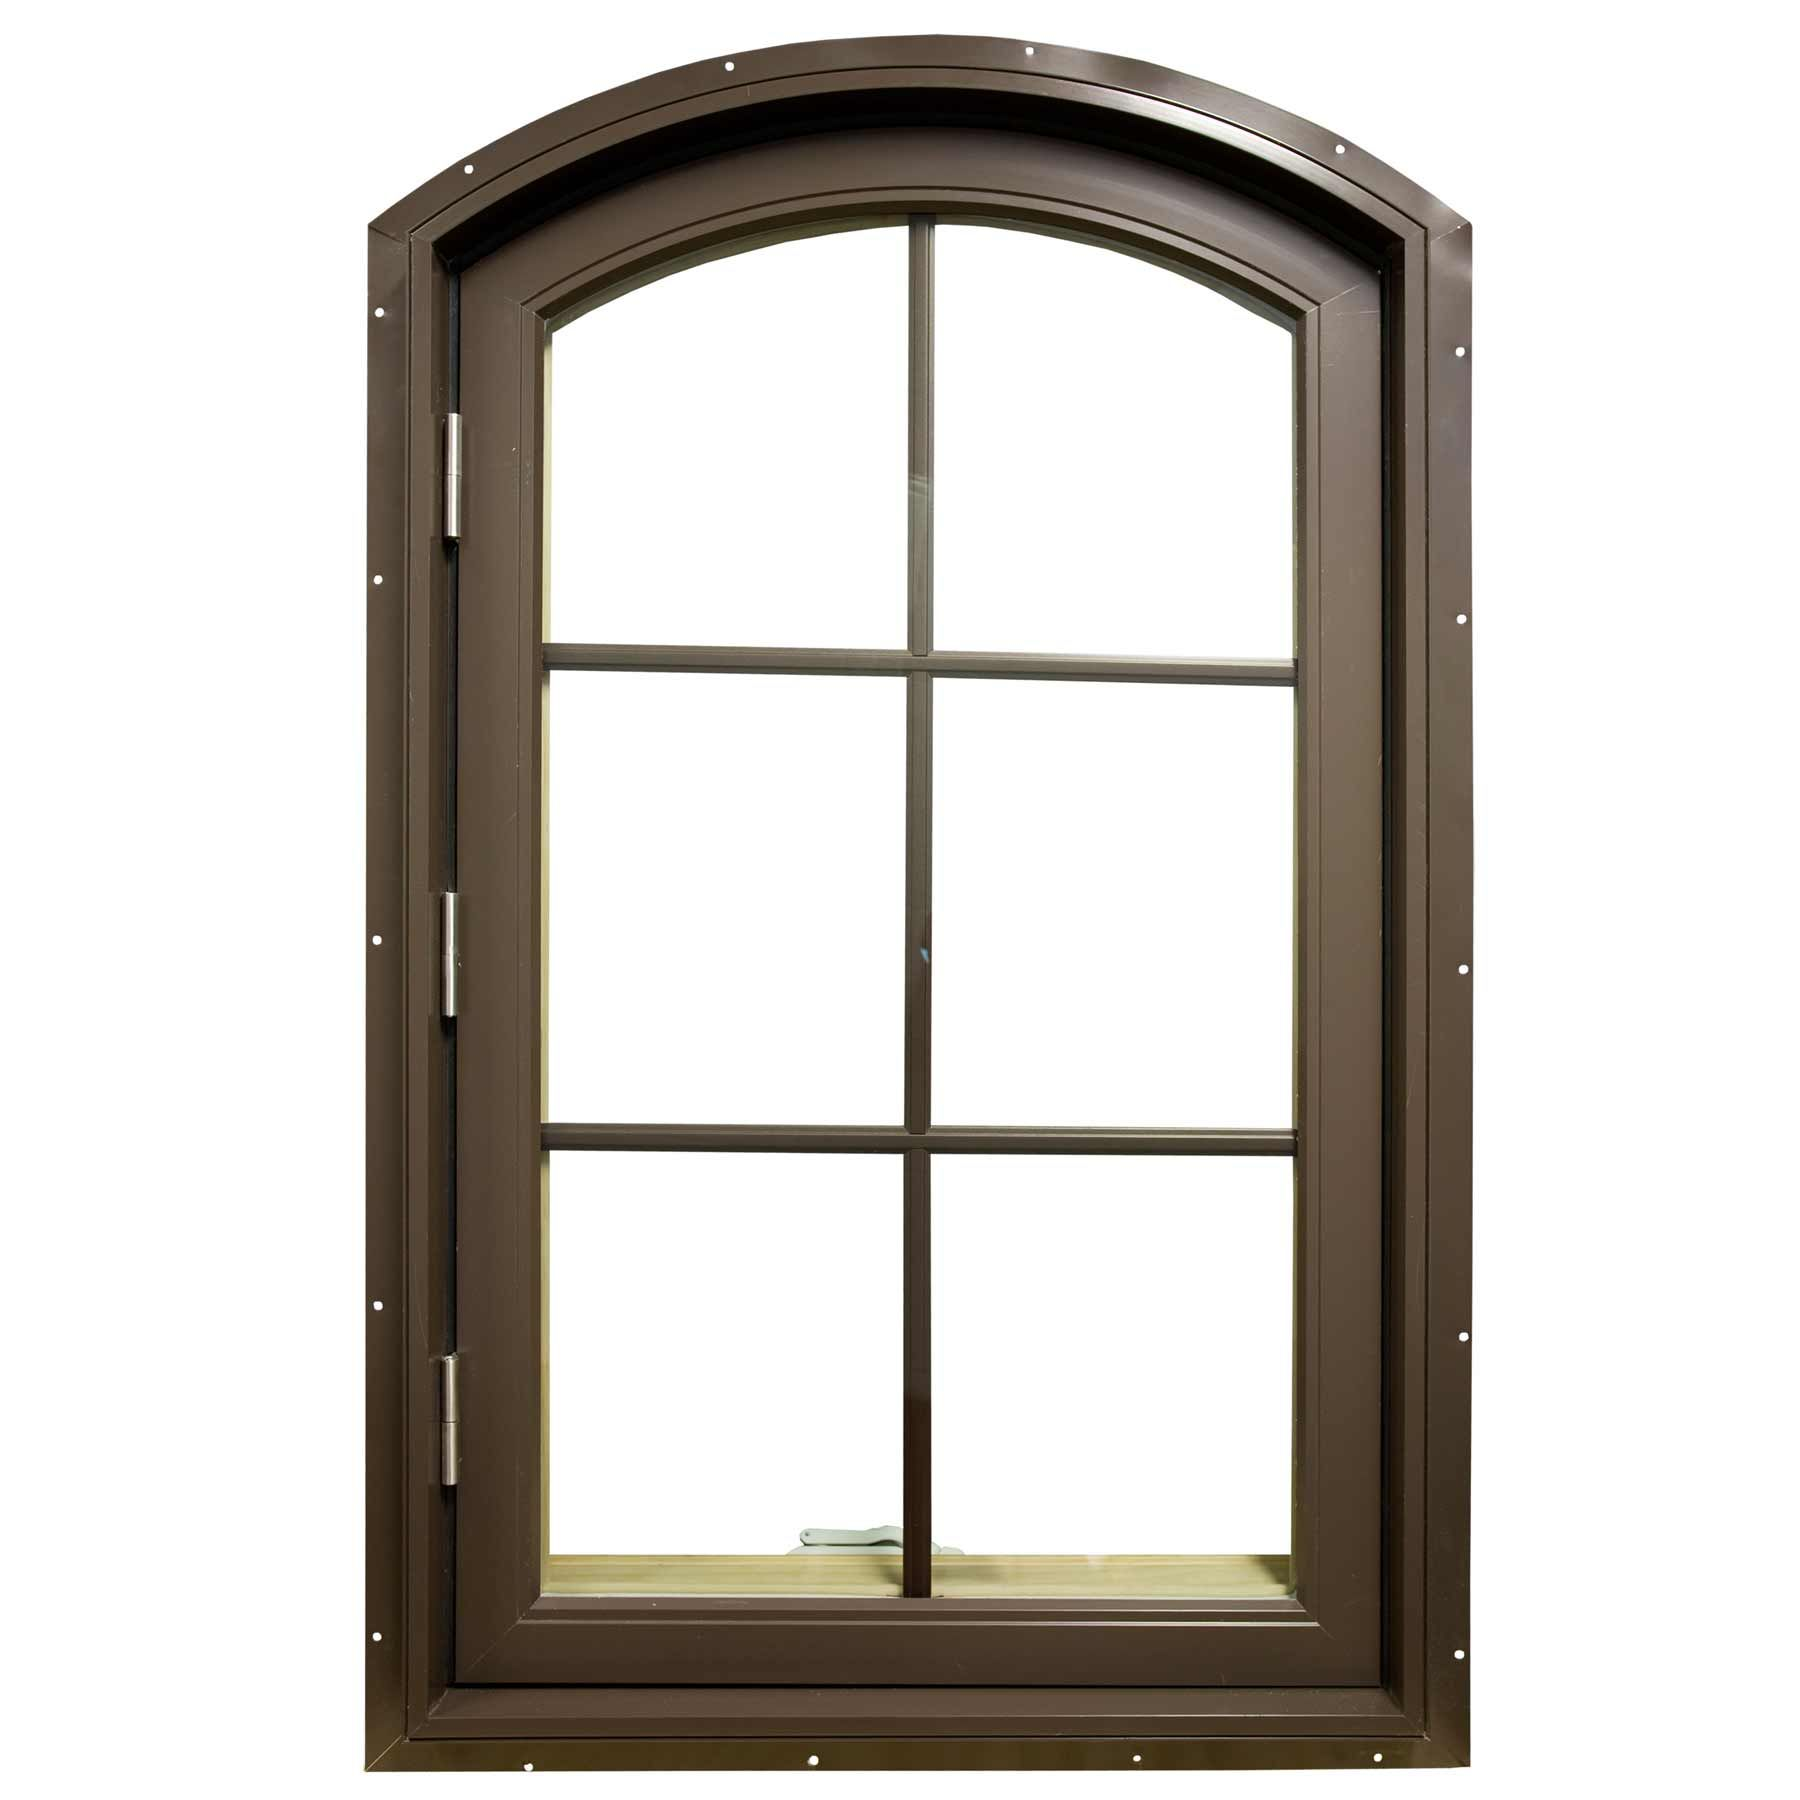 Aluminum Casement Windows For Home